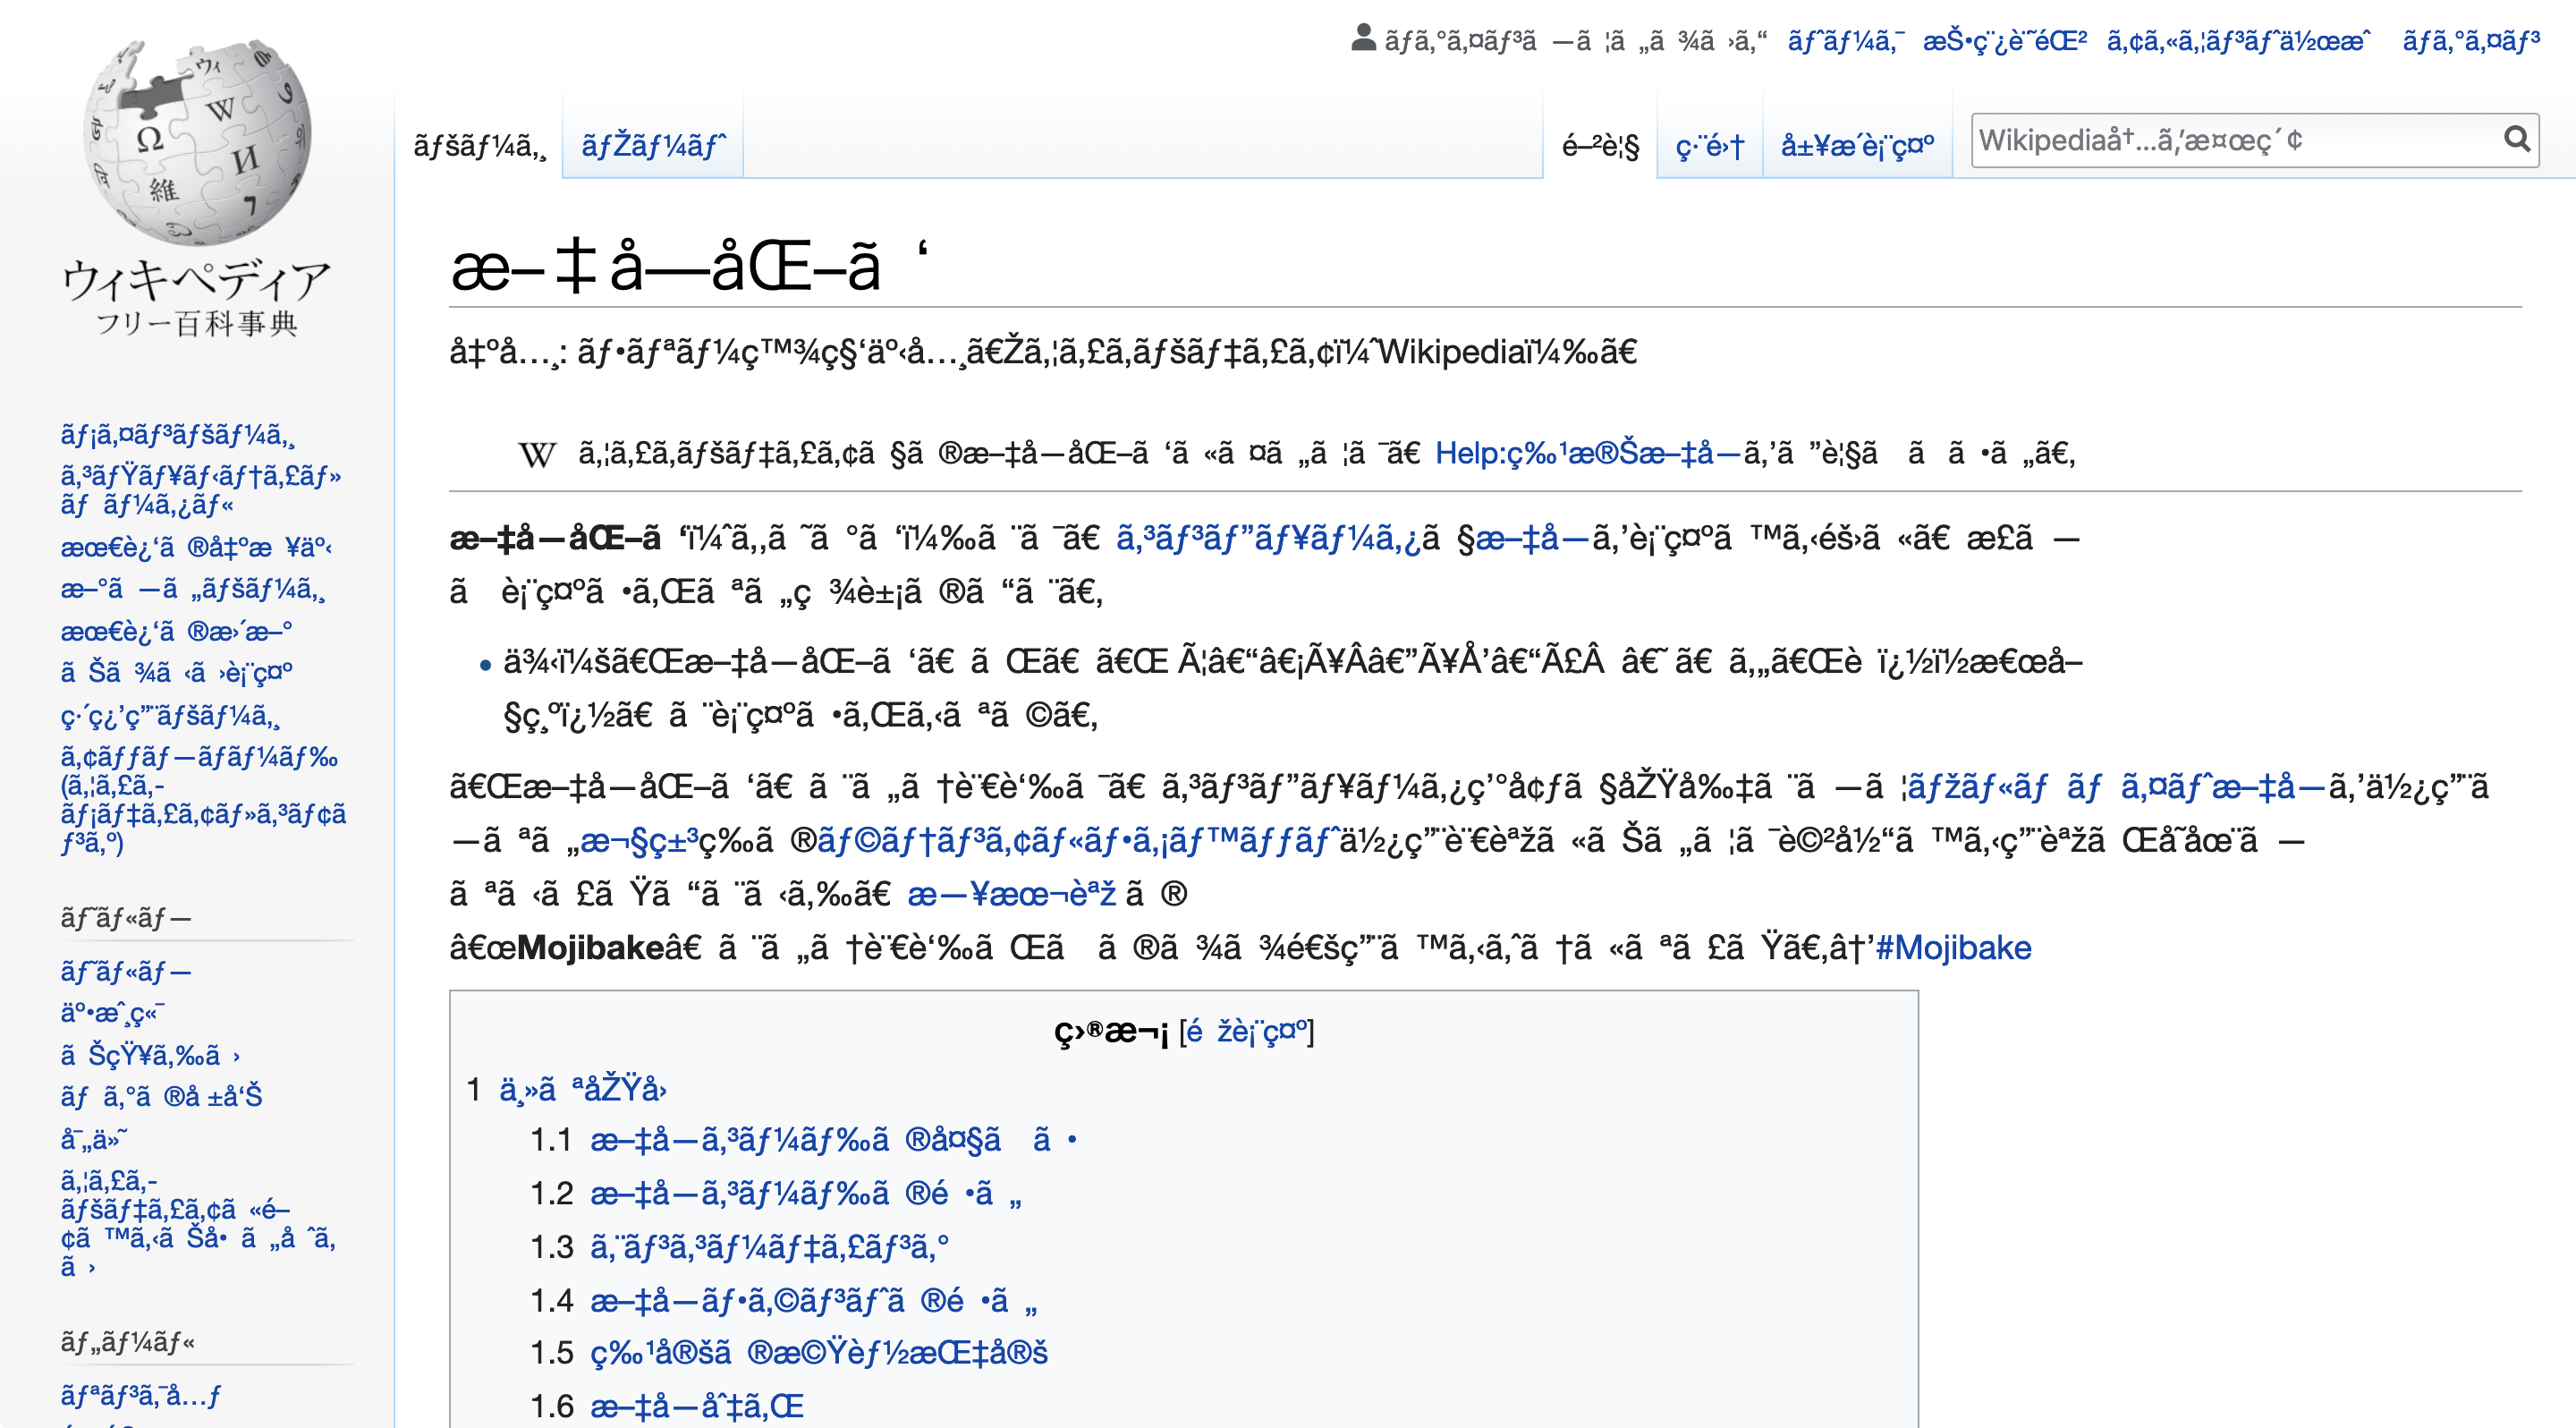 An example of a Mojibake on a webpage - the text is a mixture of random symbols that make no sense